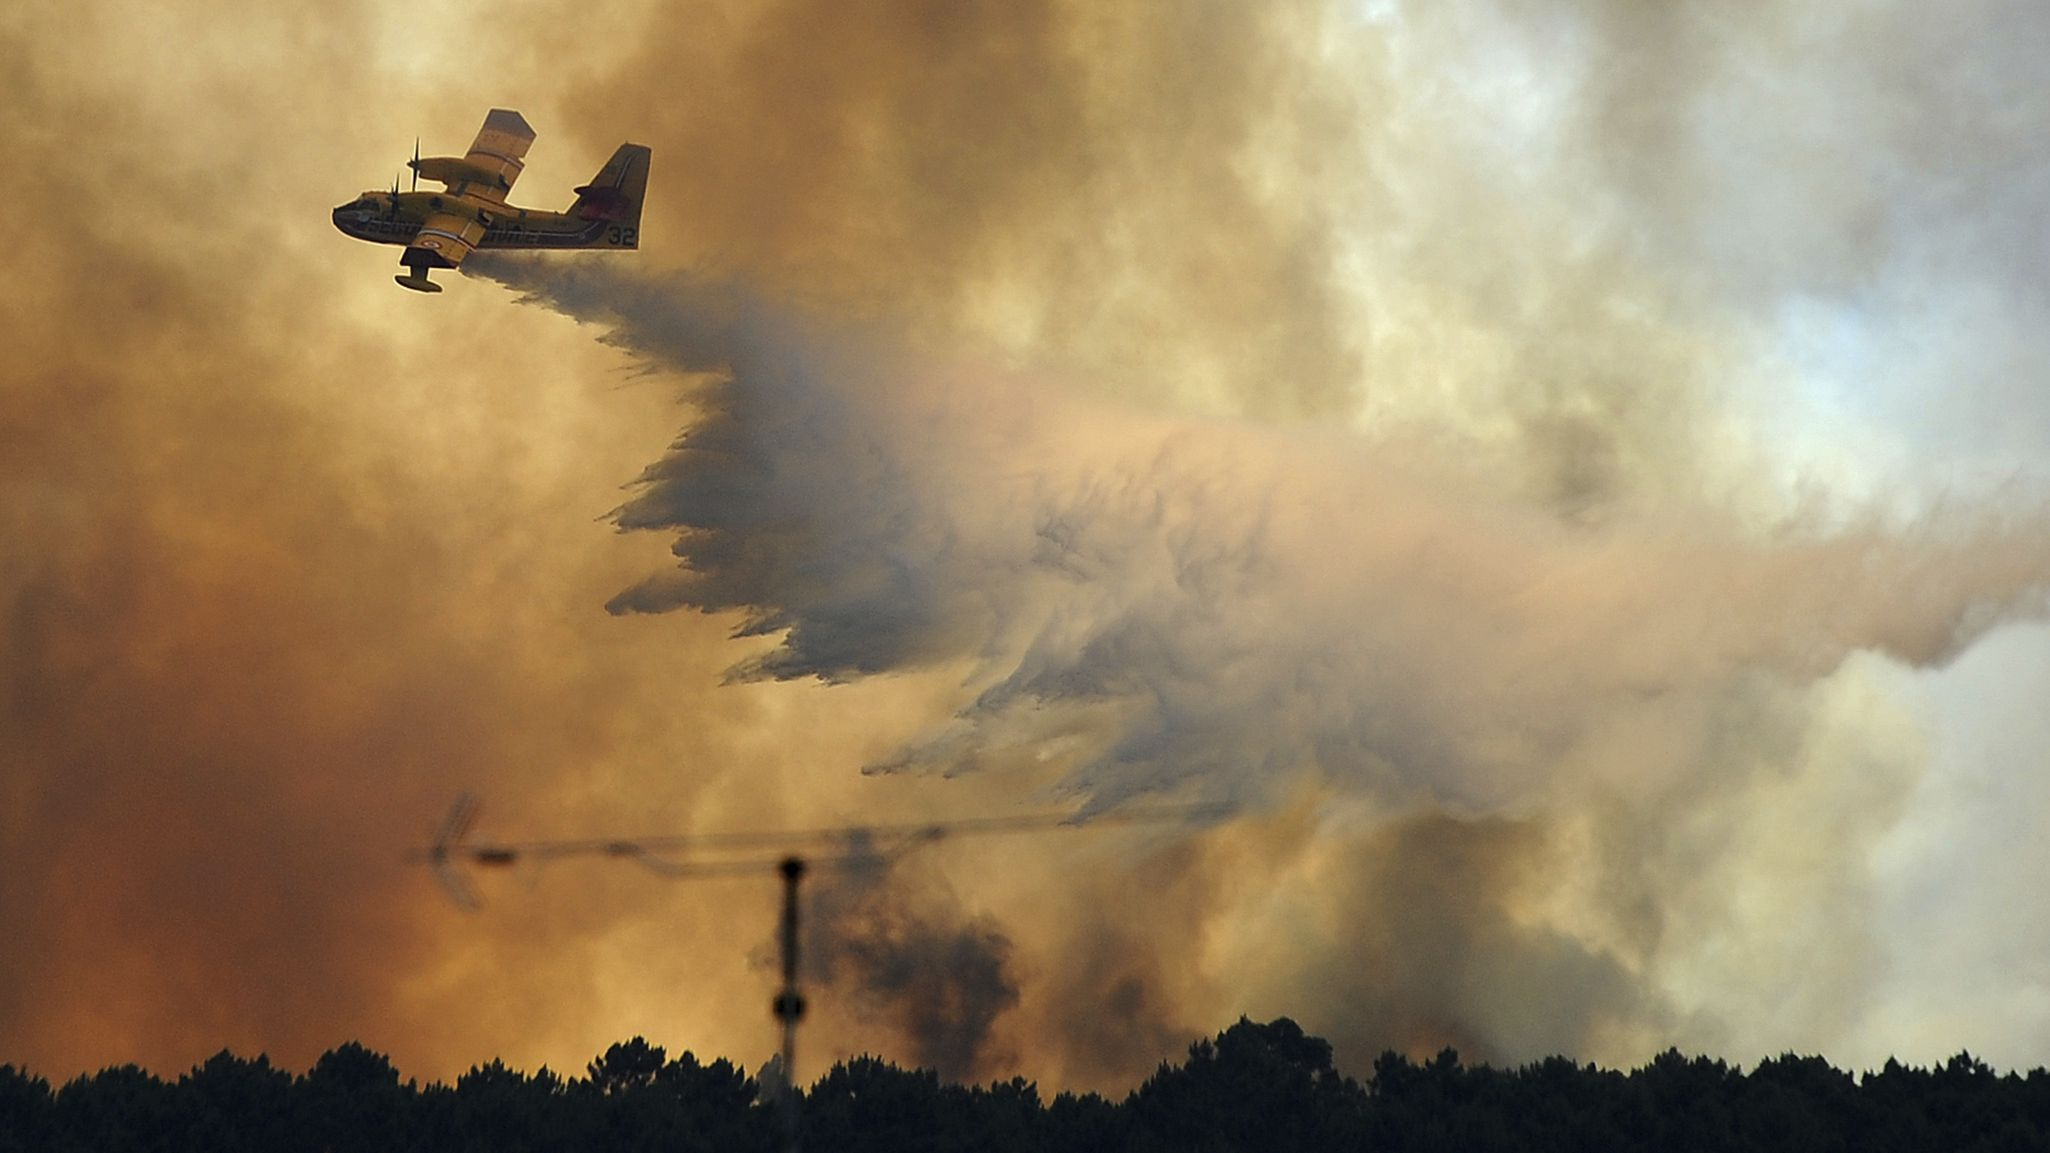 A fire fighting aircraft drops water over a fire outside the village of Pedrogao Grande central Portugal, Monday, June 19, 2017. More than 2,000 firefighters in Portugal battled Monday to contain major wildfires in the central region of the country, where one blaze killed dozens of people, while authorities came under mounting criticism for not doing more to prevent the tragedy.